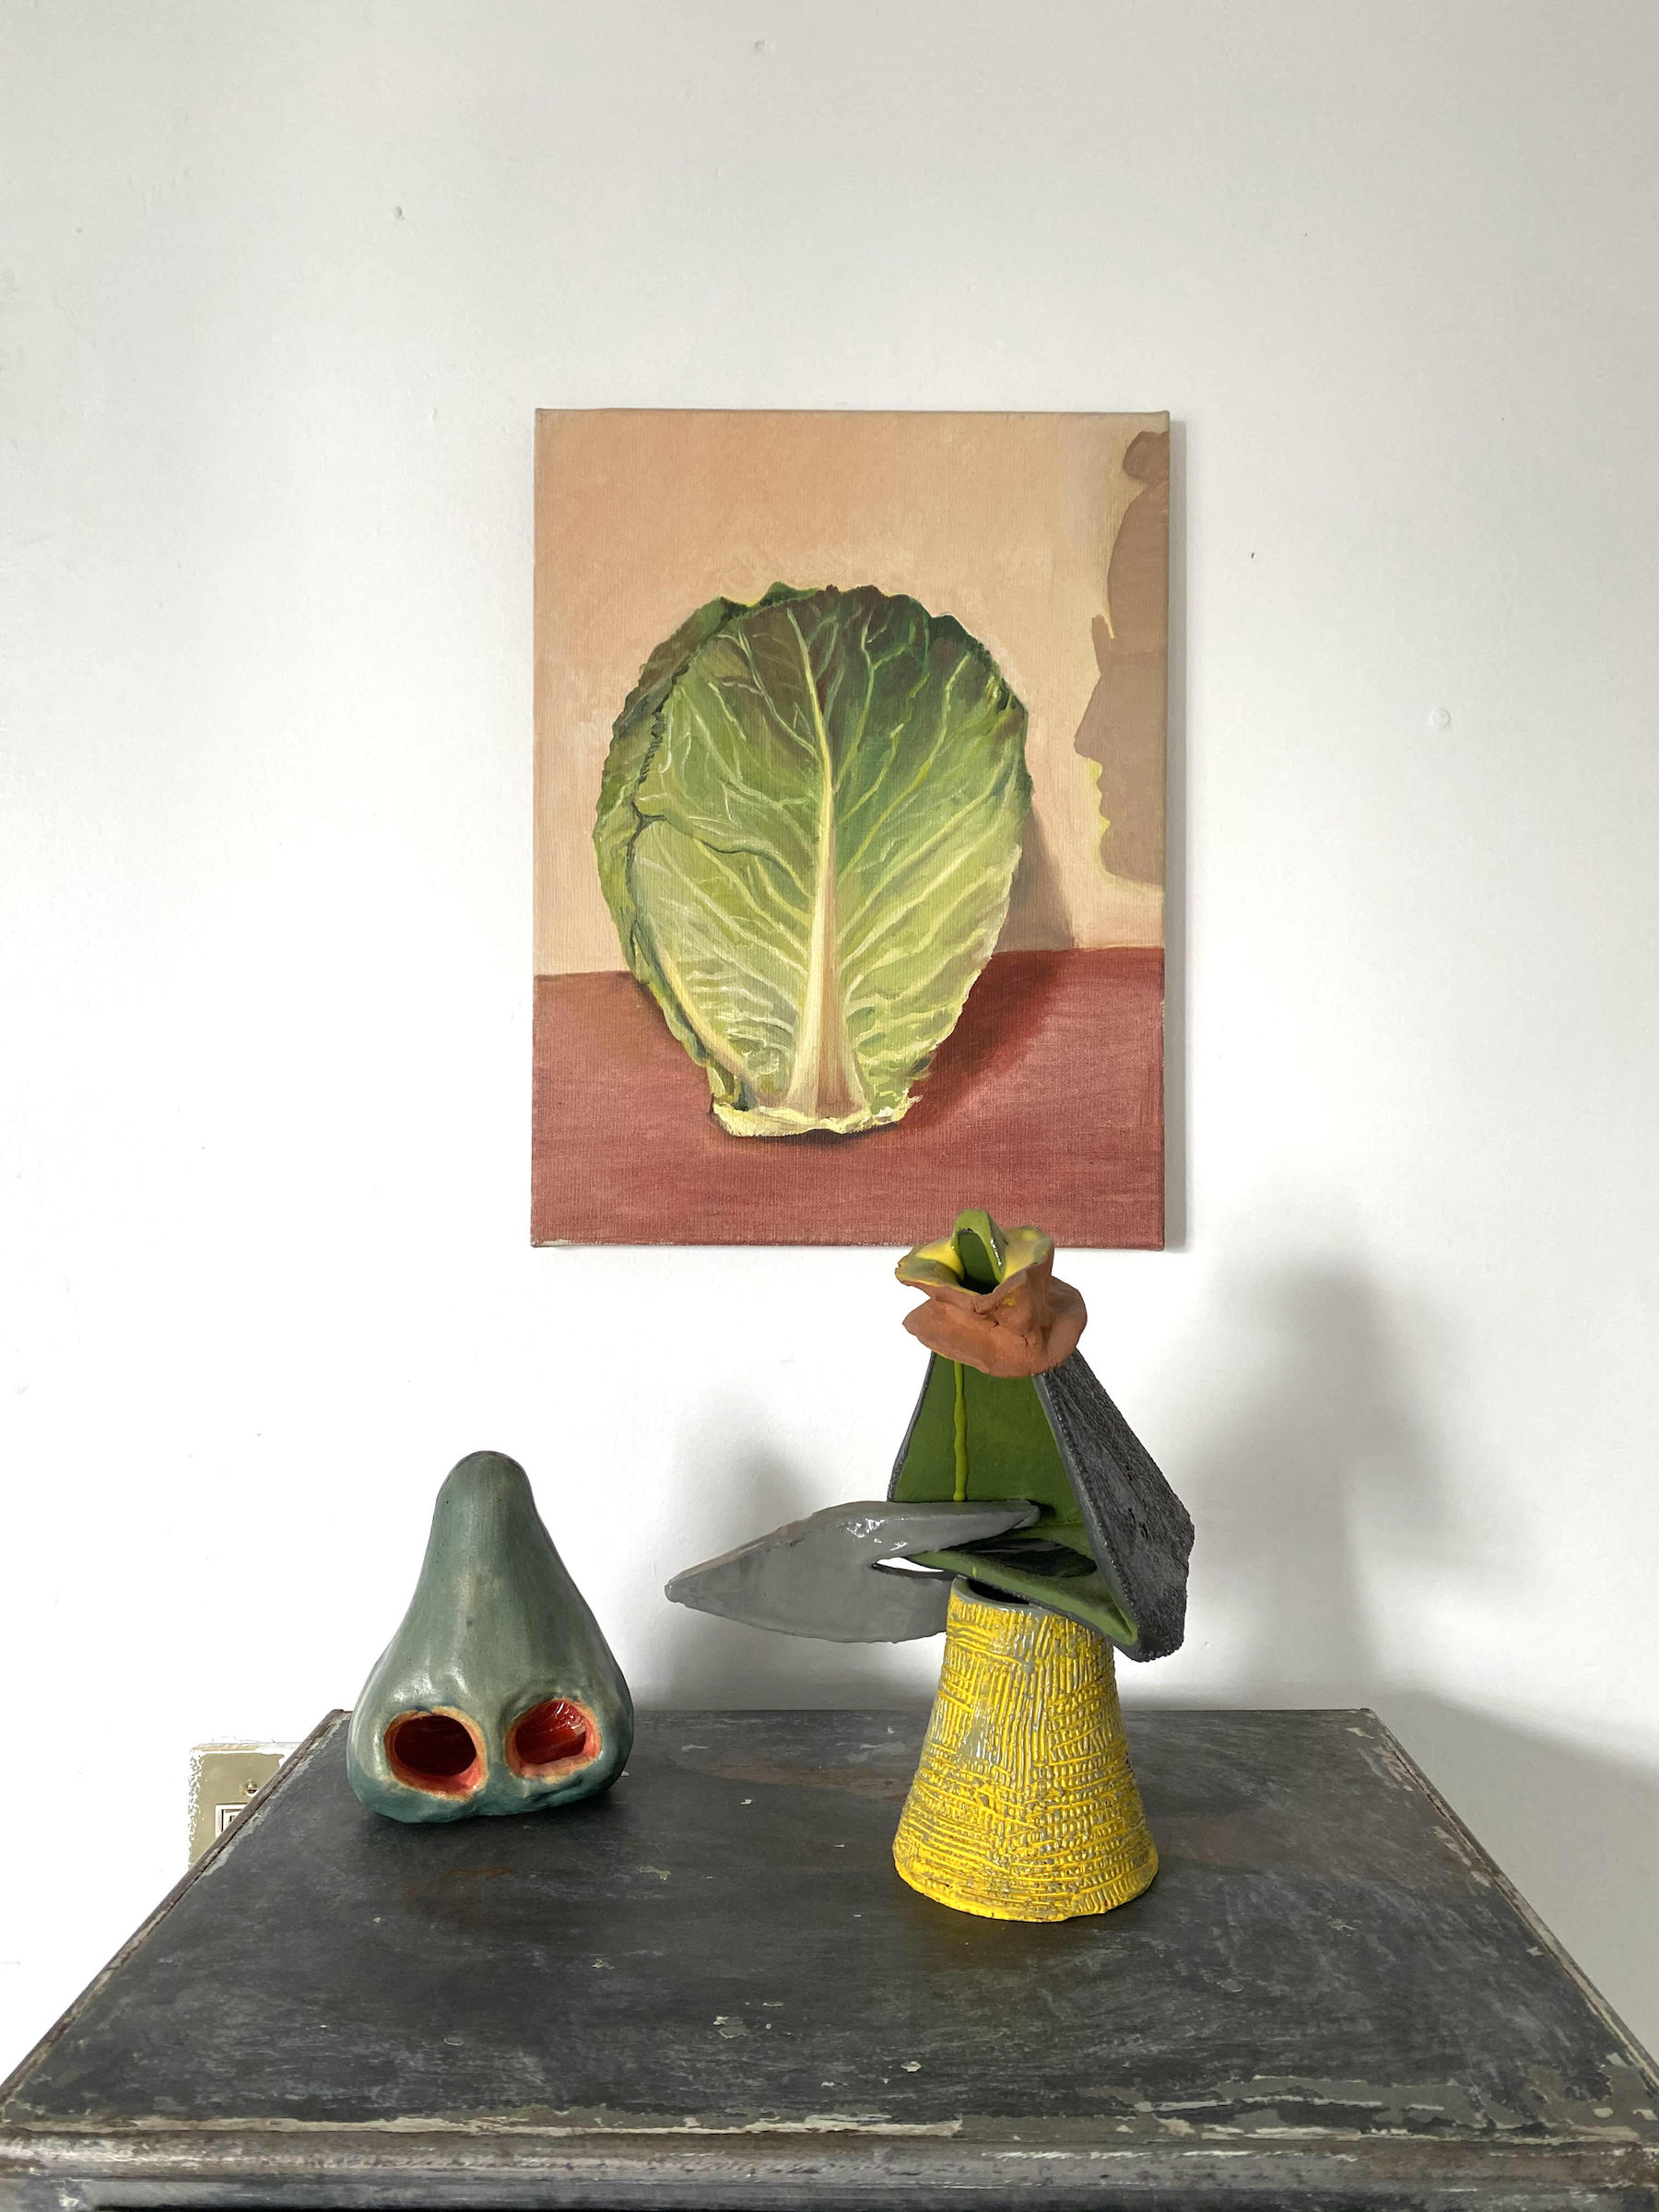 Two interesting pieces by Allison Katz and Arlene Shechet. Courtesy of Chris Sharp.